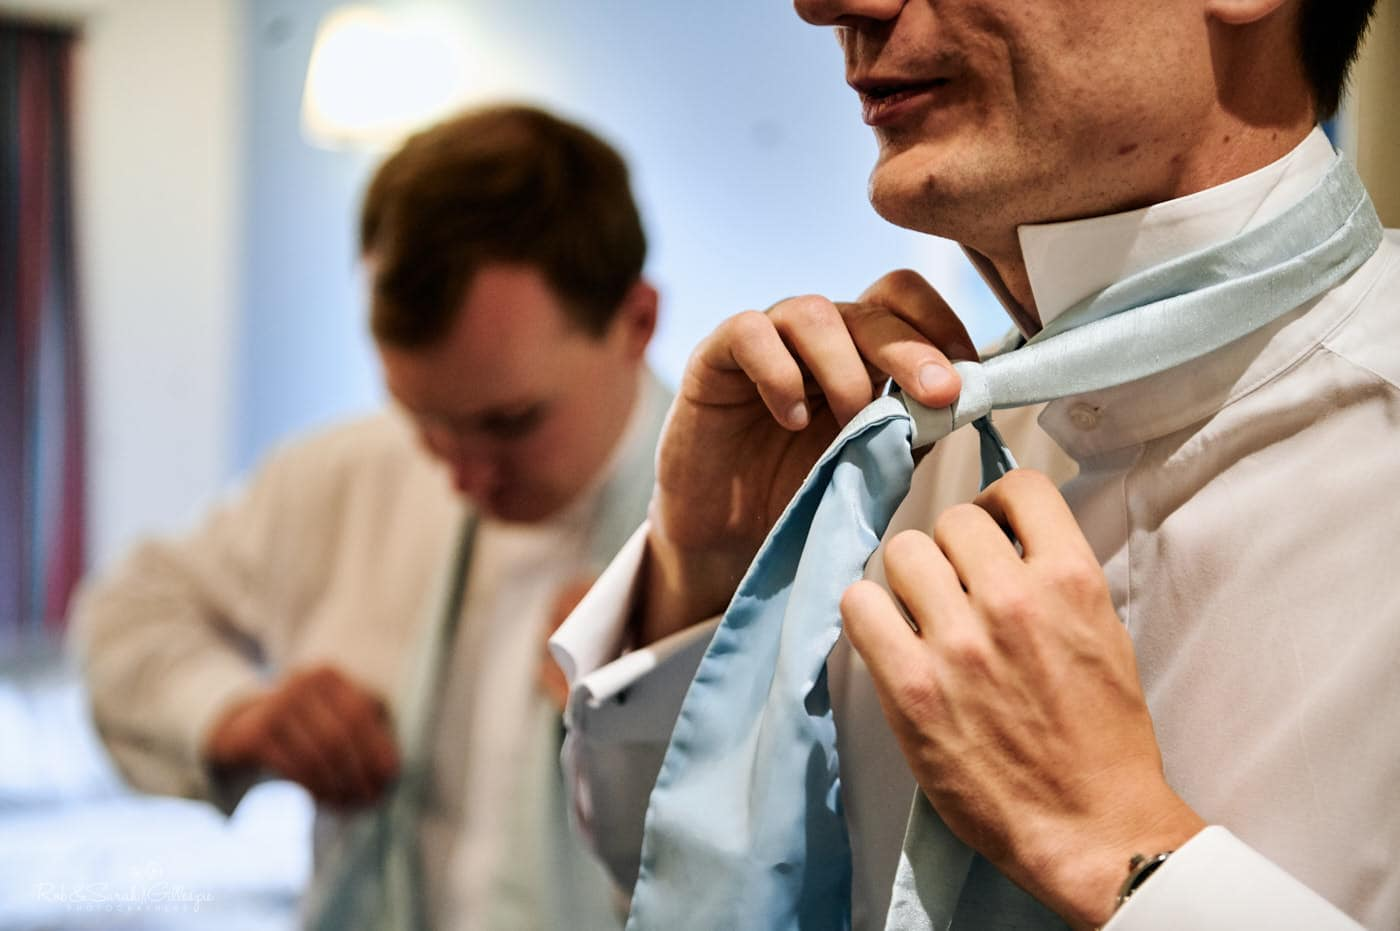 Groom adjusts tie as he gets ready for wedding